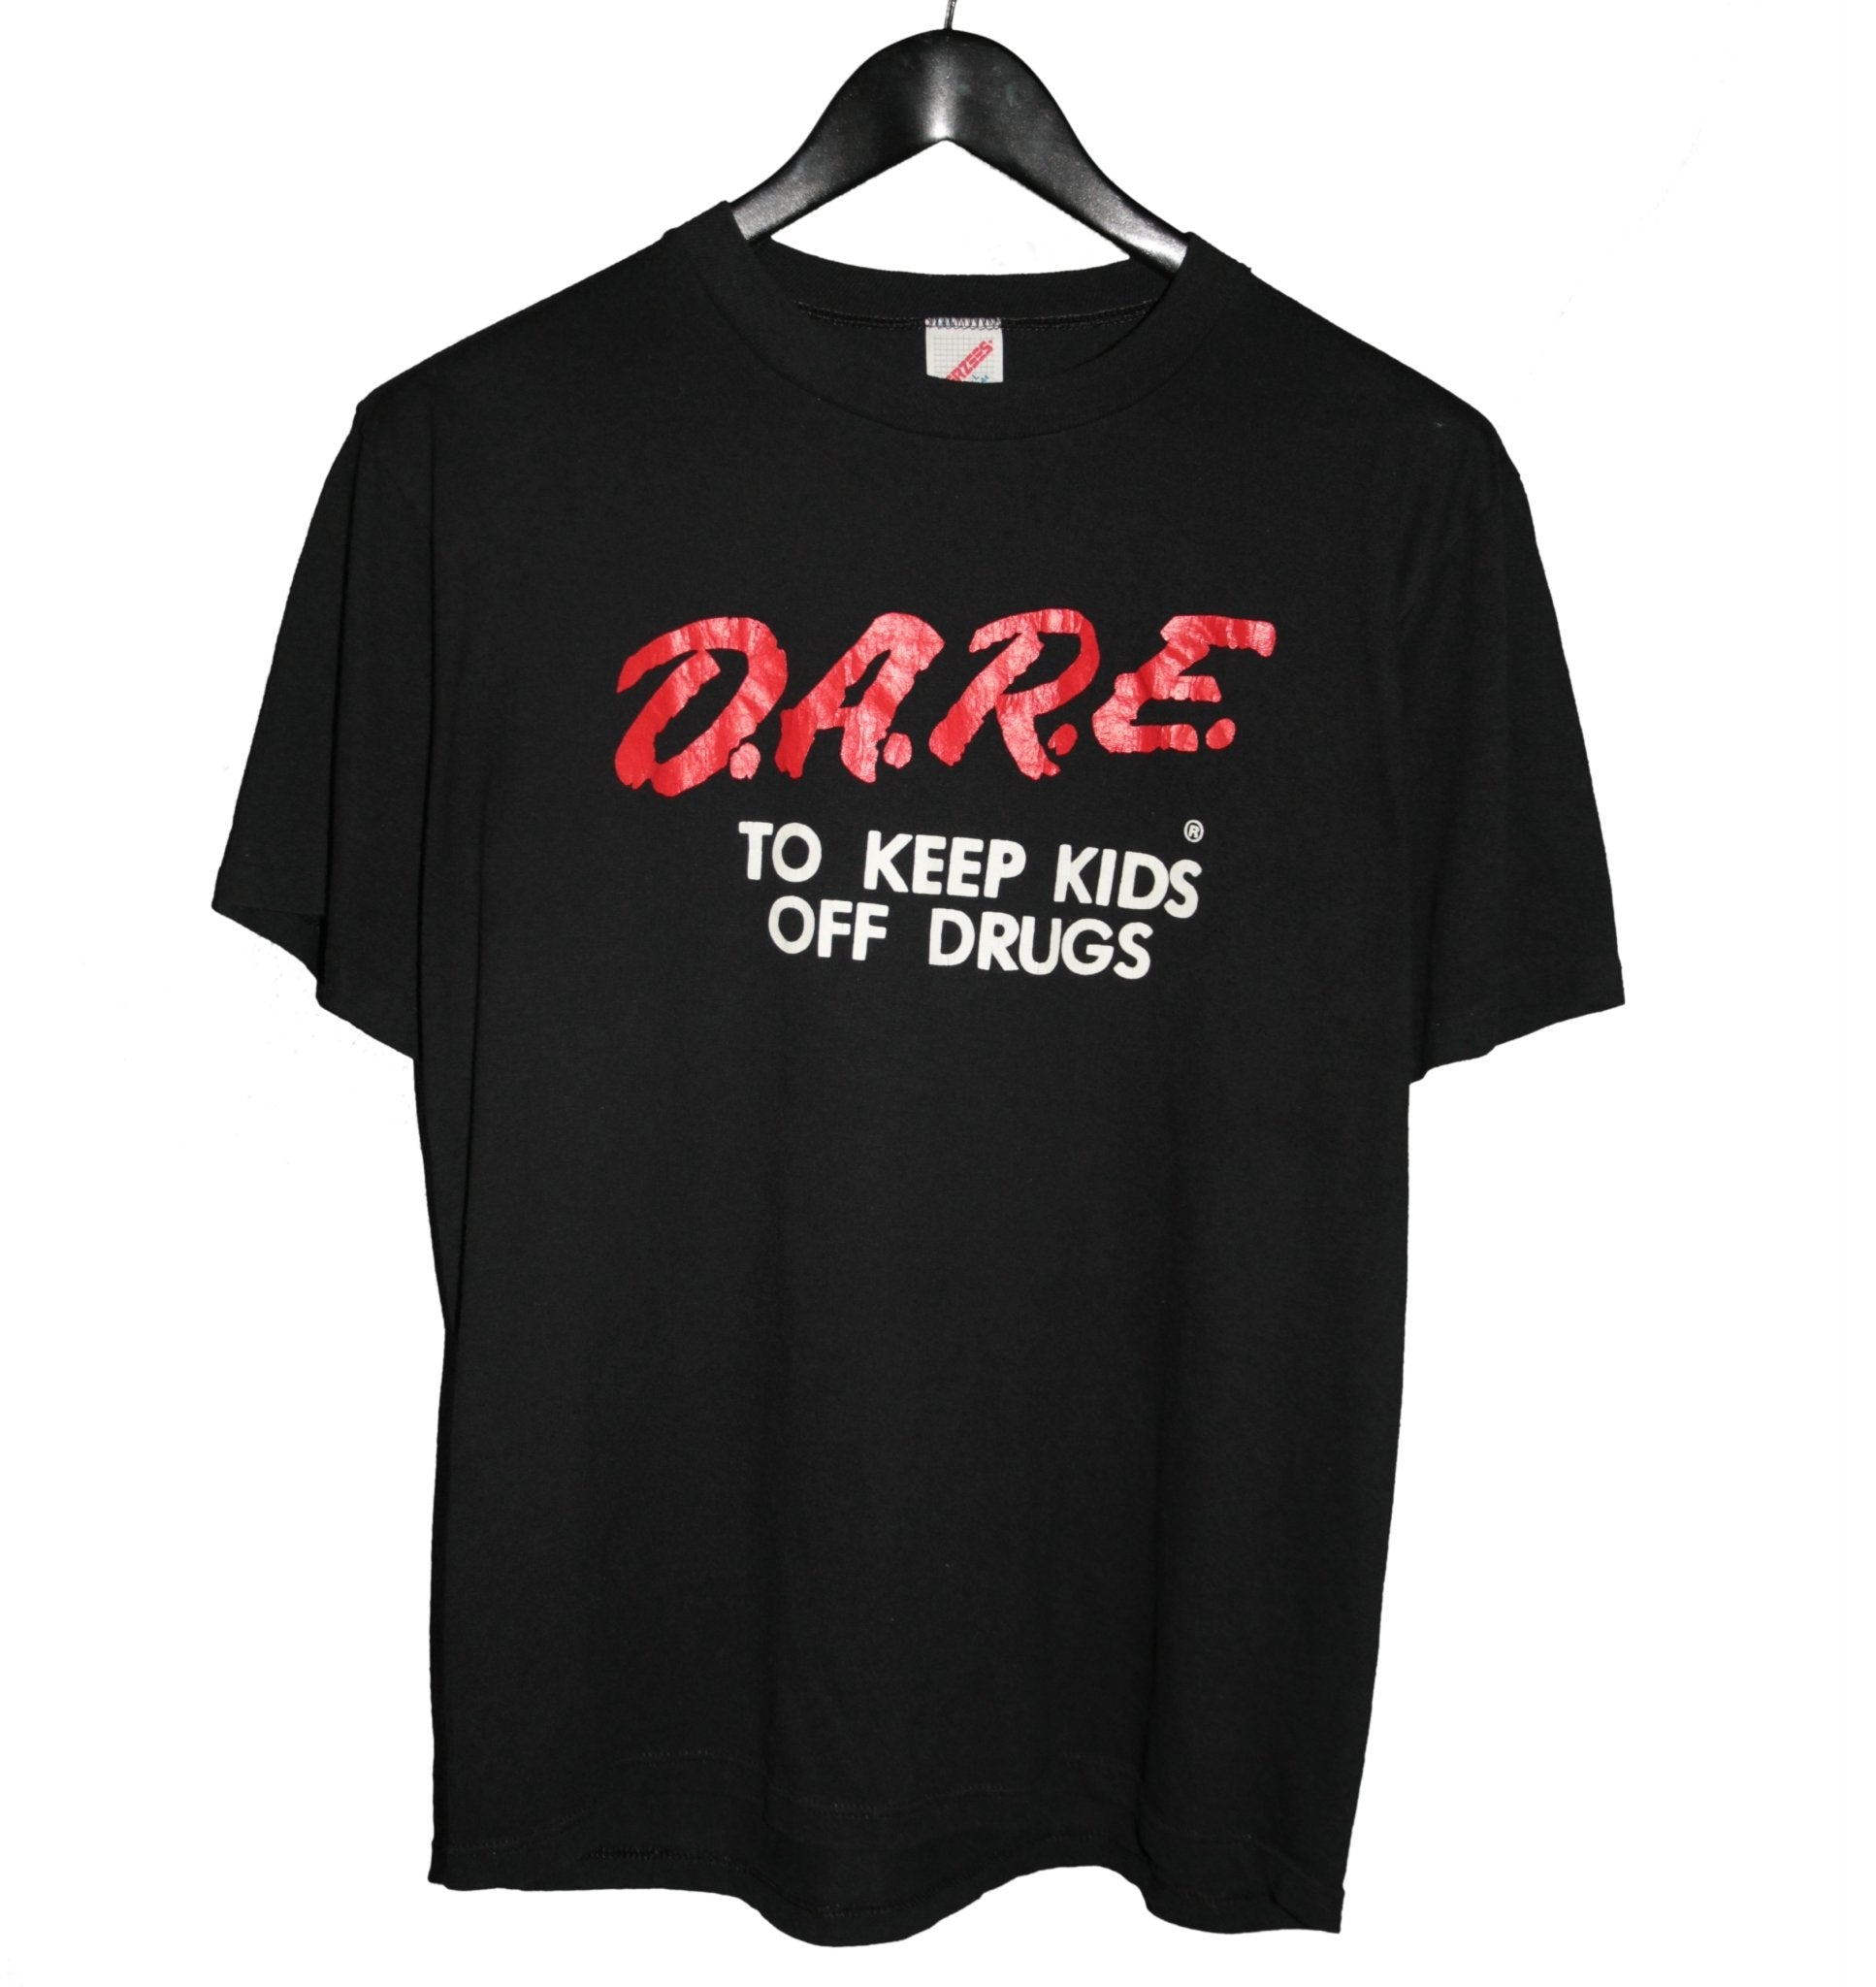 D.A.R.E. 1980s Keep Kids Off Drugs Shirt - Faded AU